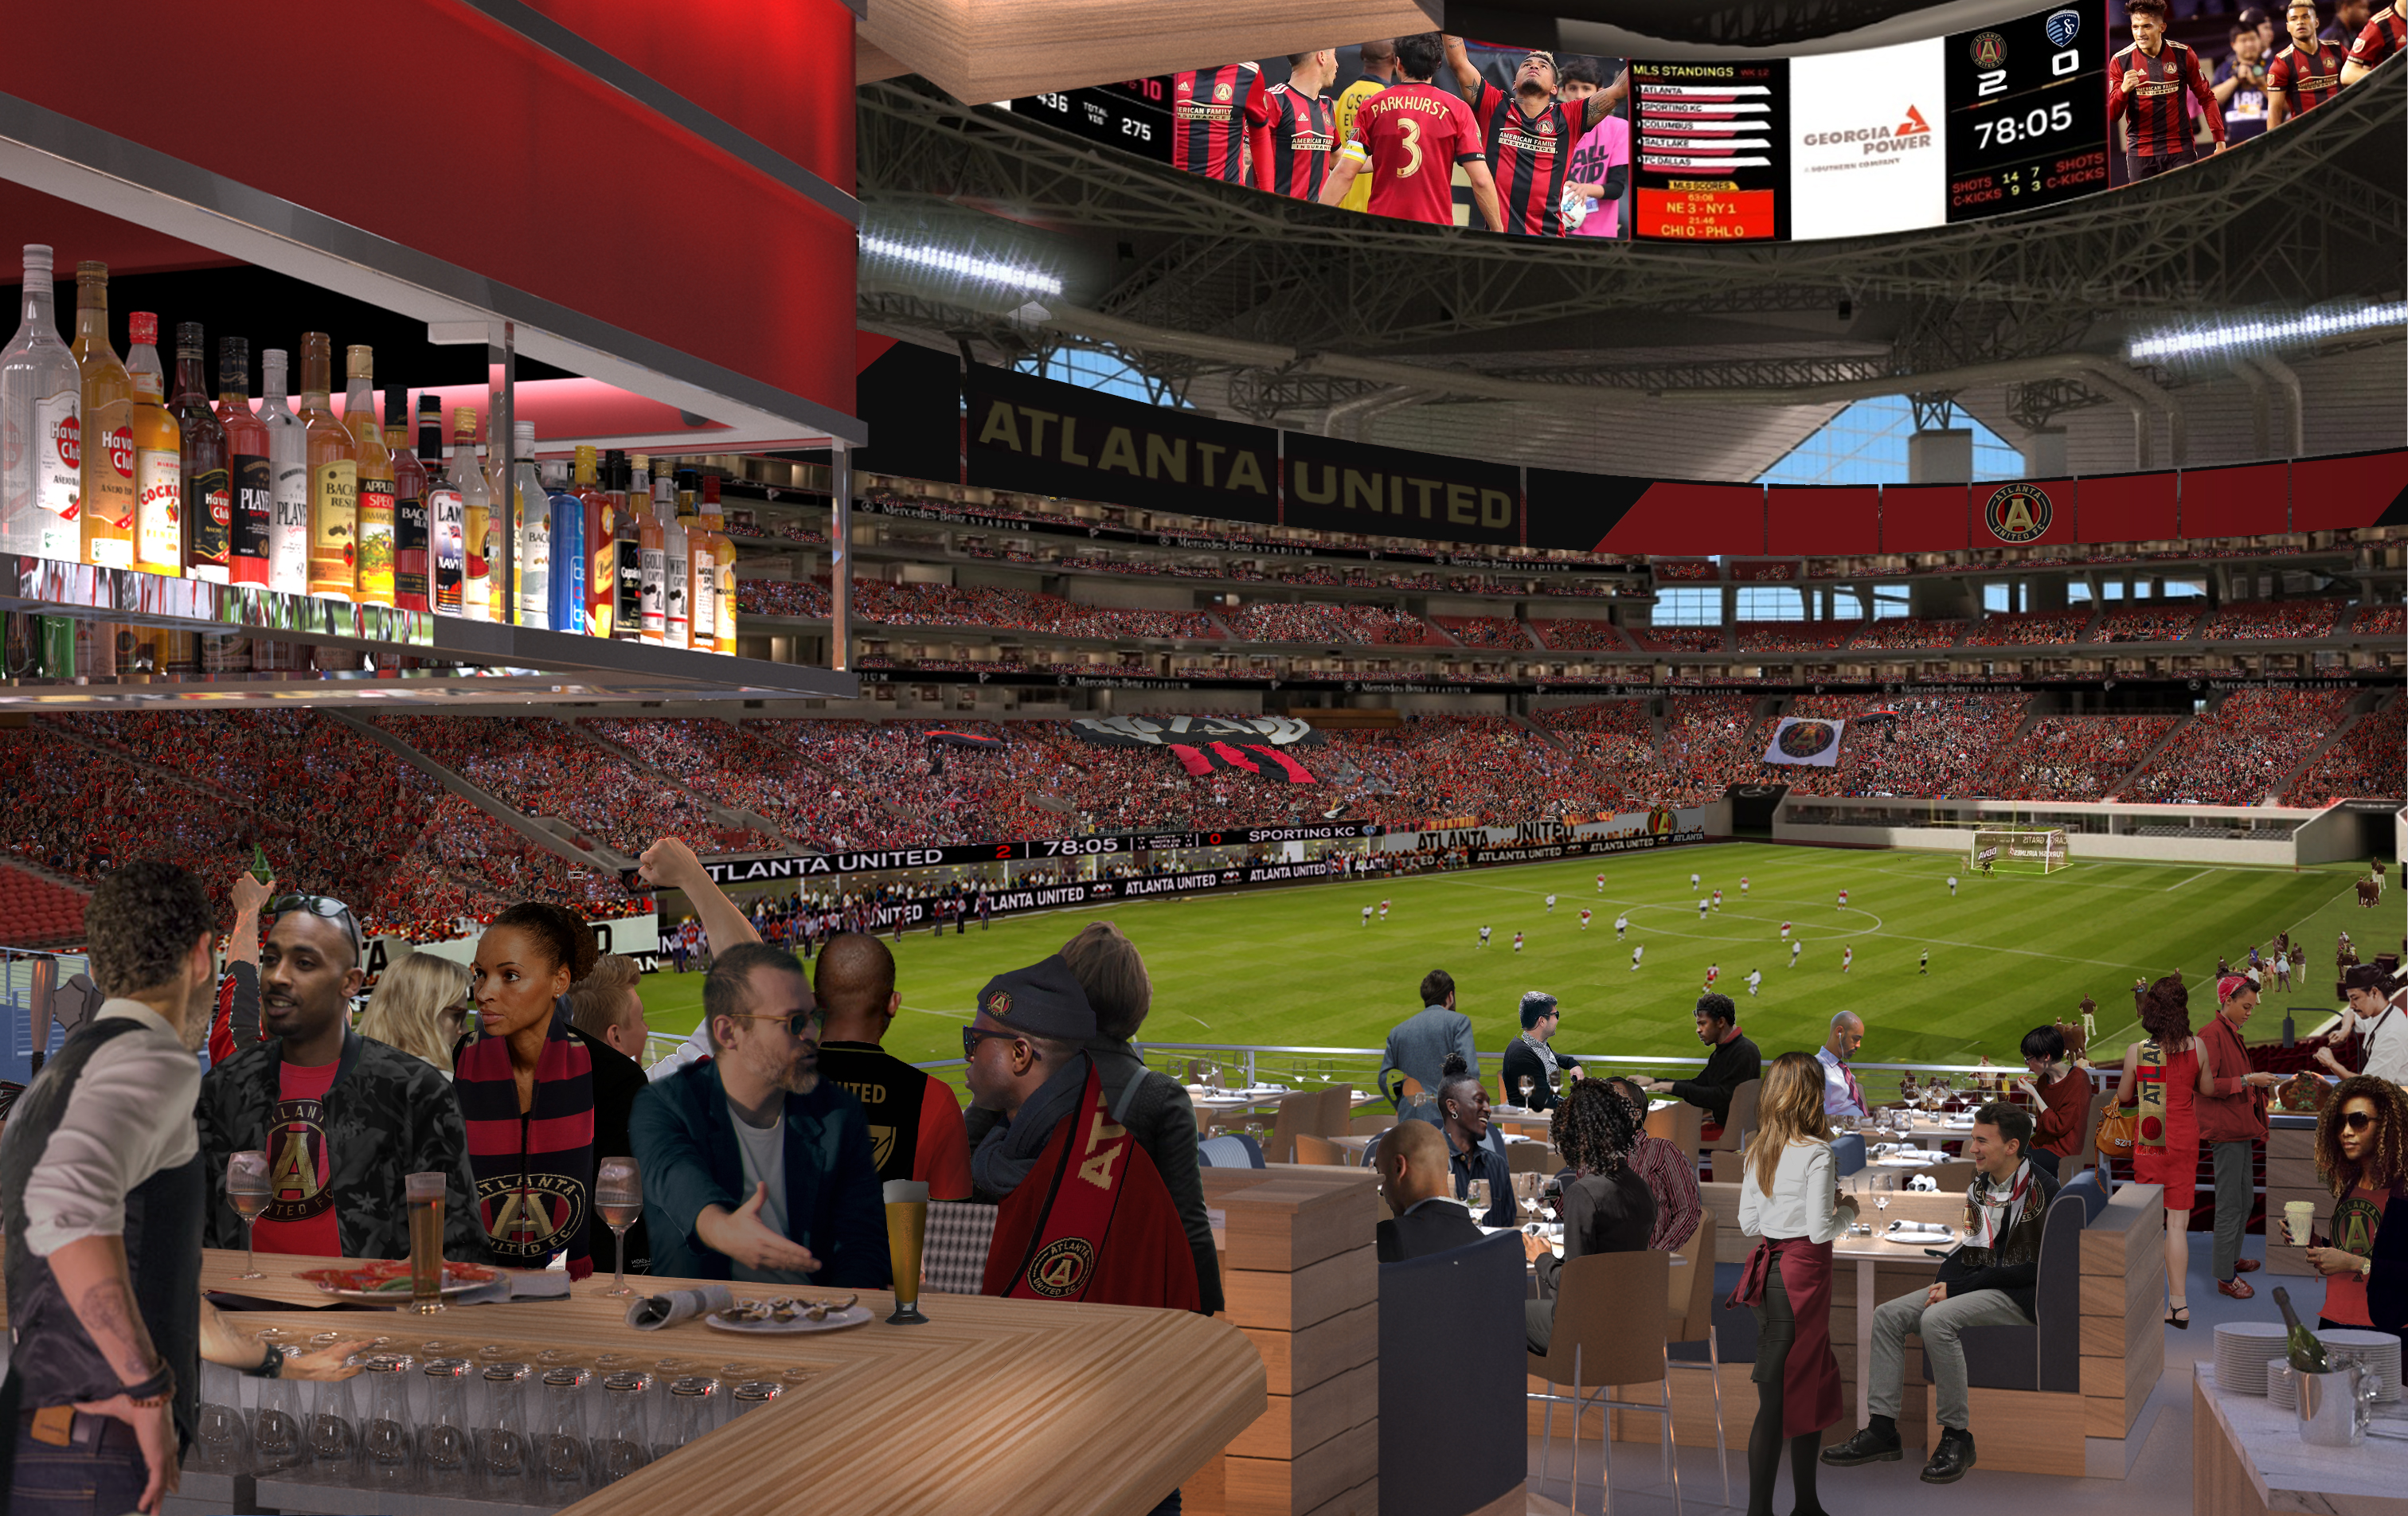 Two urban licks team heads private club restaurant at for Mercedes benz stadium application